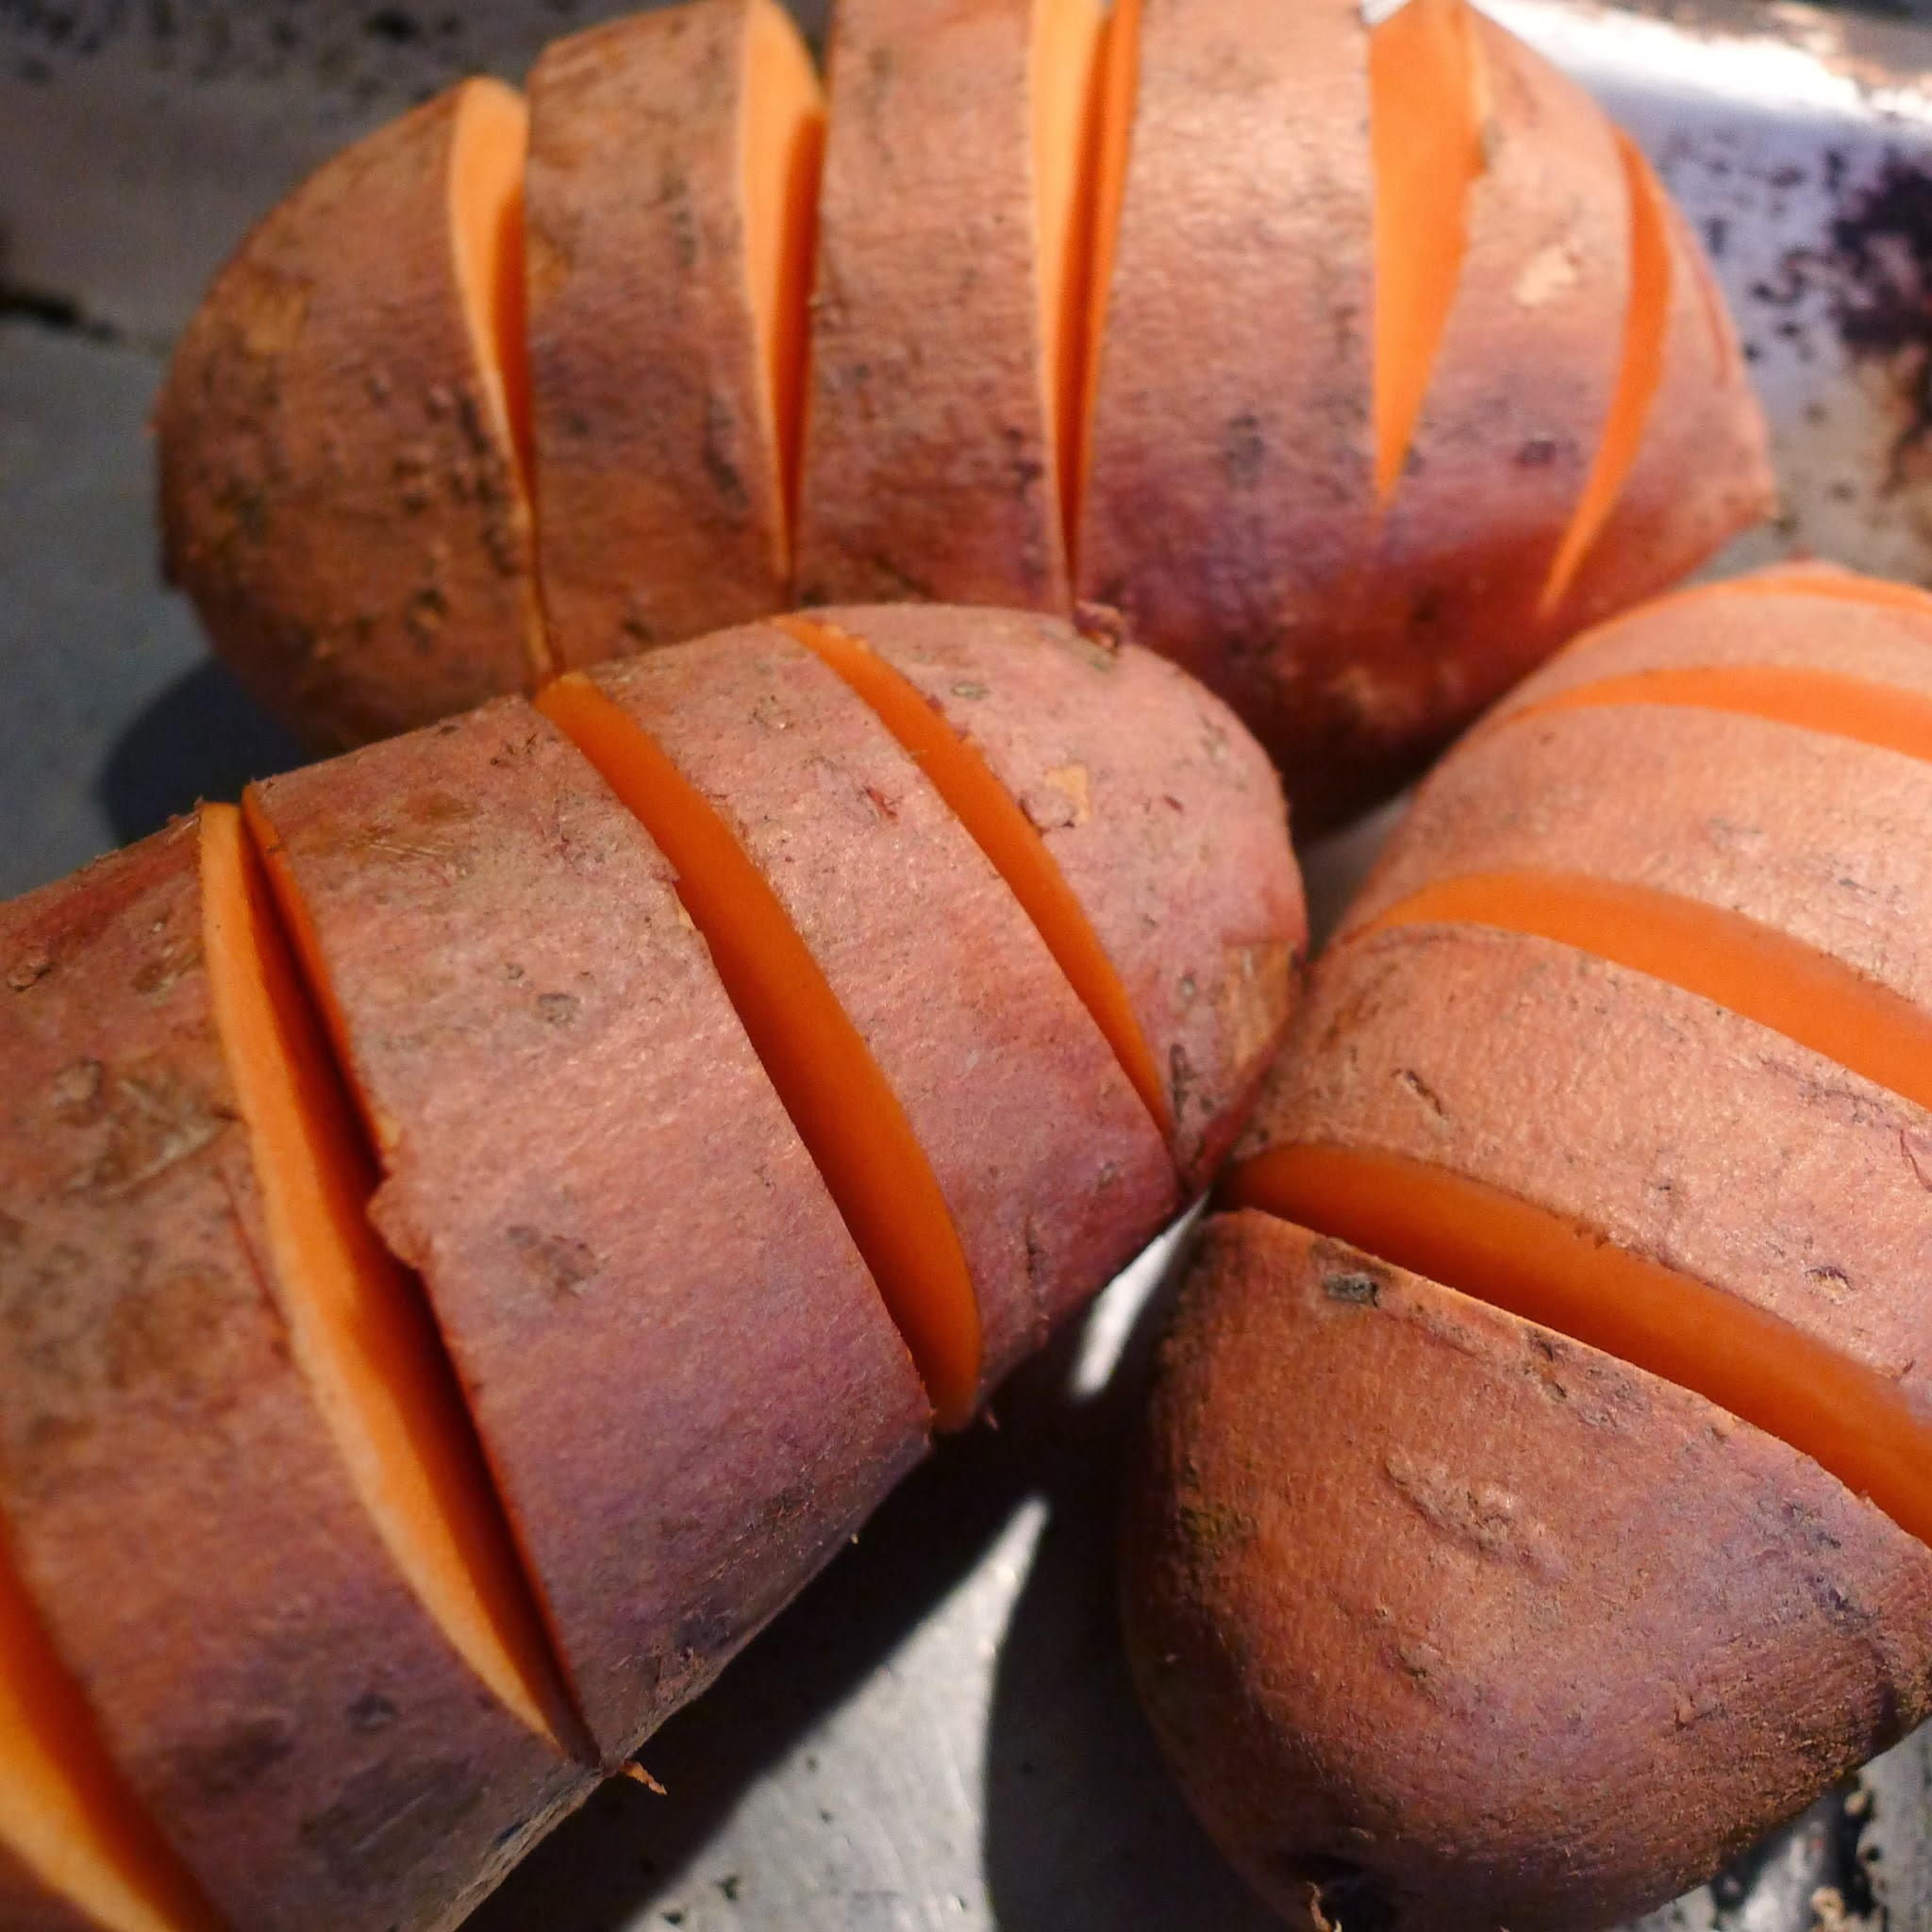 Spicy hasselback sweet potatoes